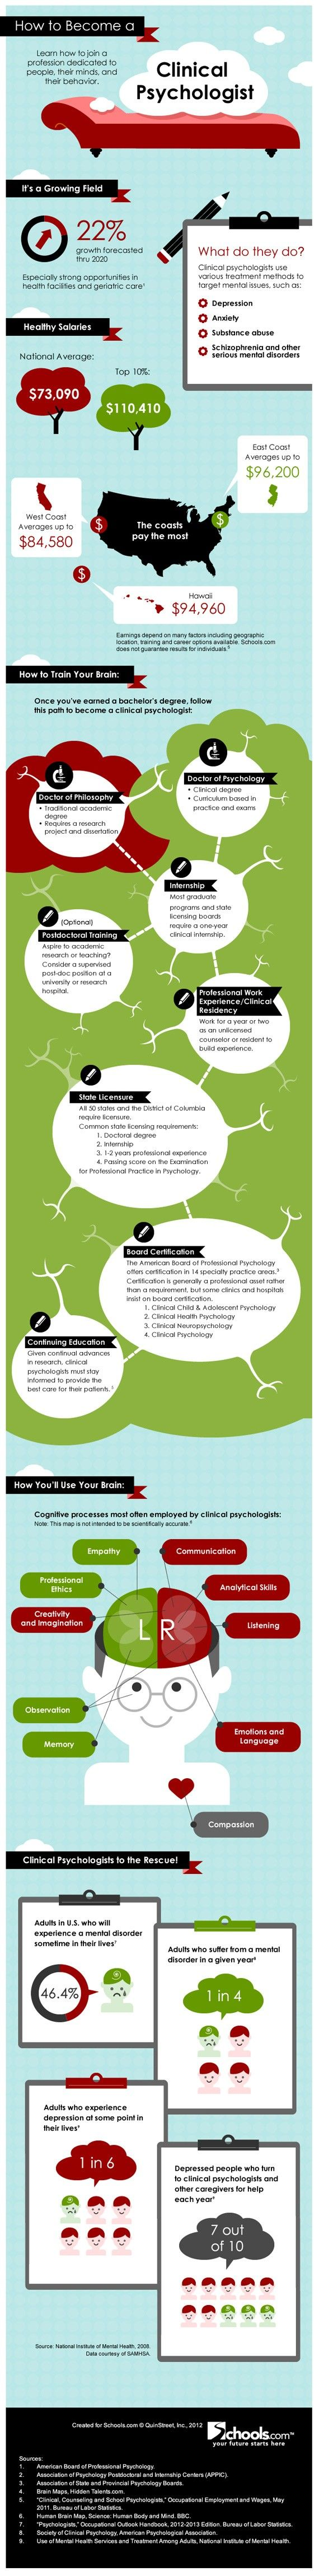 How To Become A Clinical Psychologist [Infographic] - Careers Articles